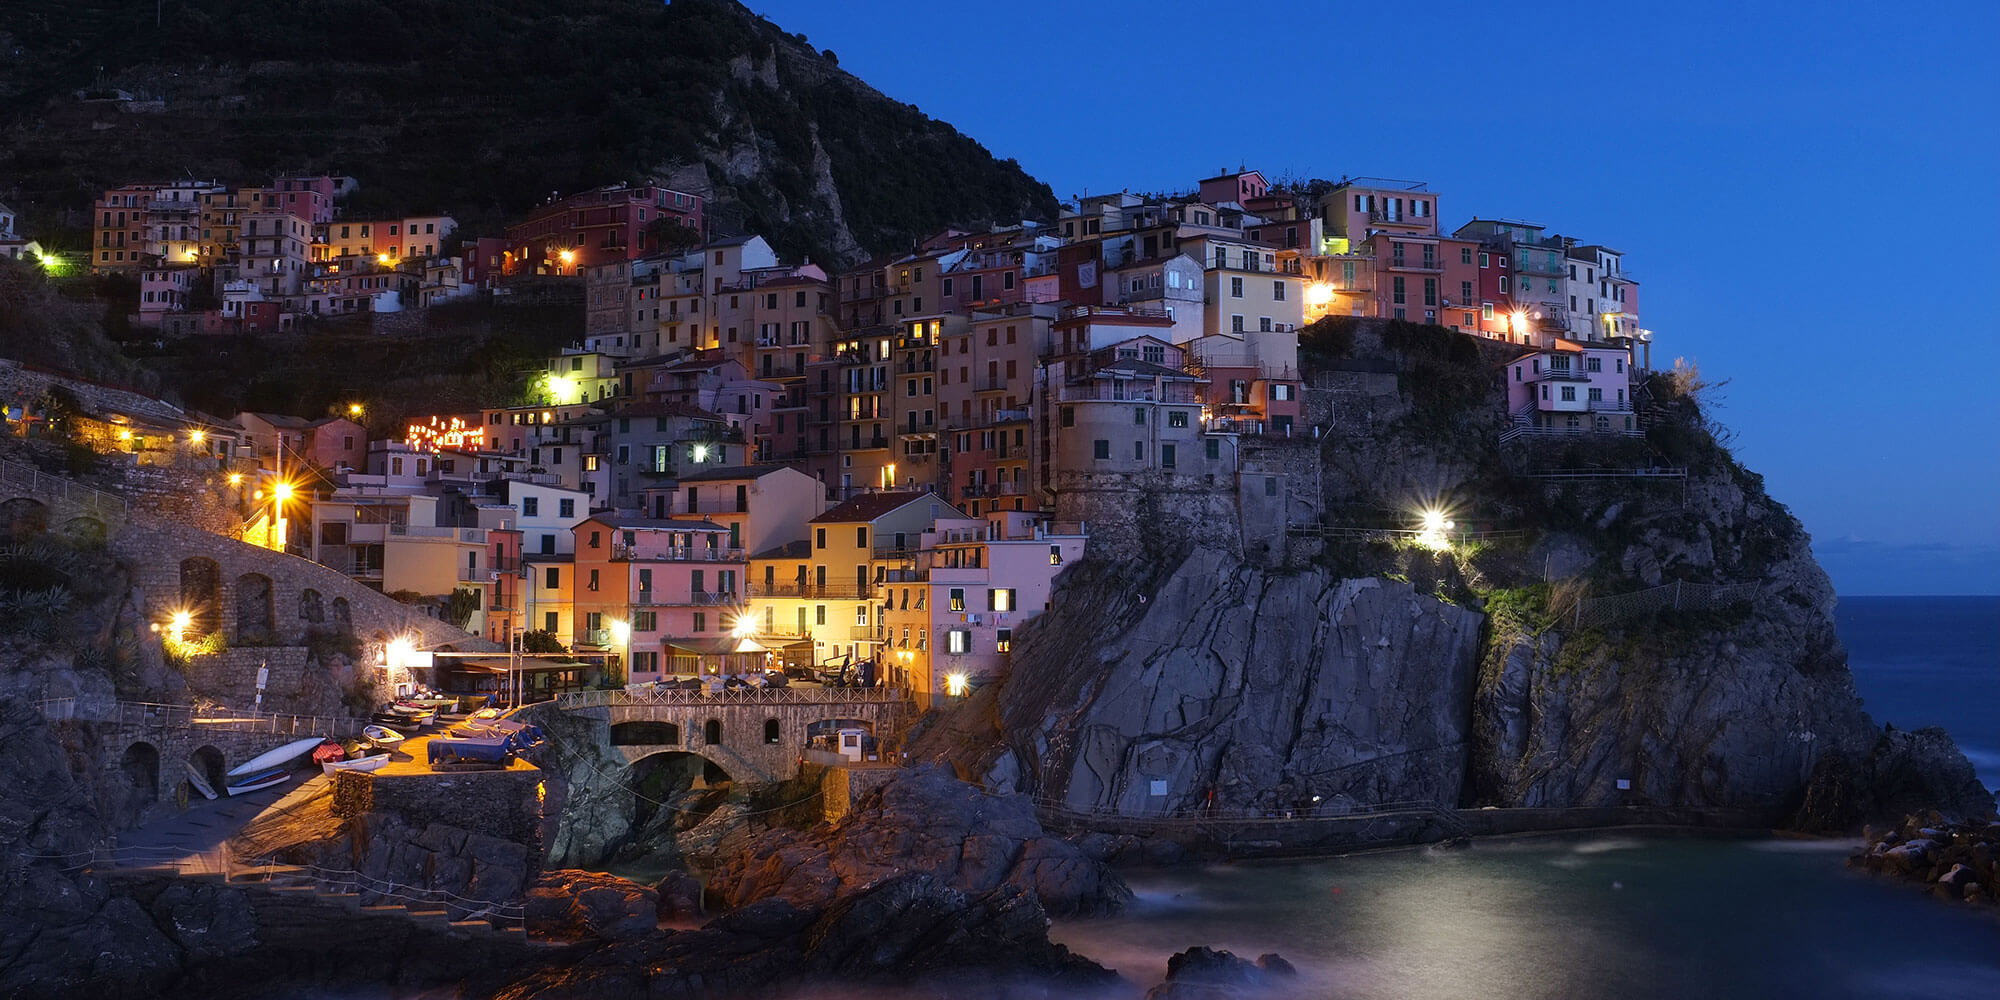 cinque terre 828614 - Not <i>that</i> kind of LSD trip